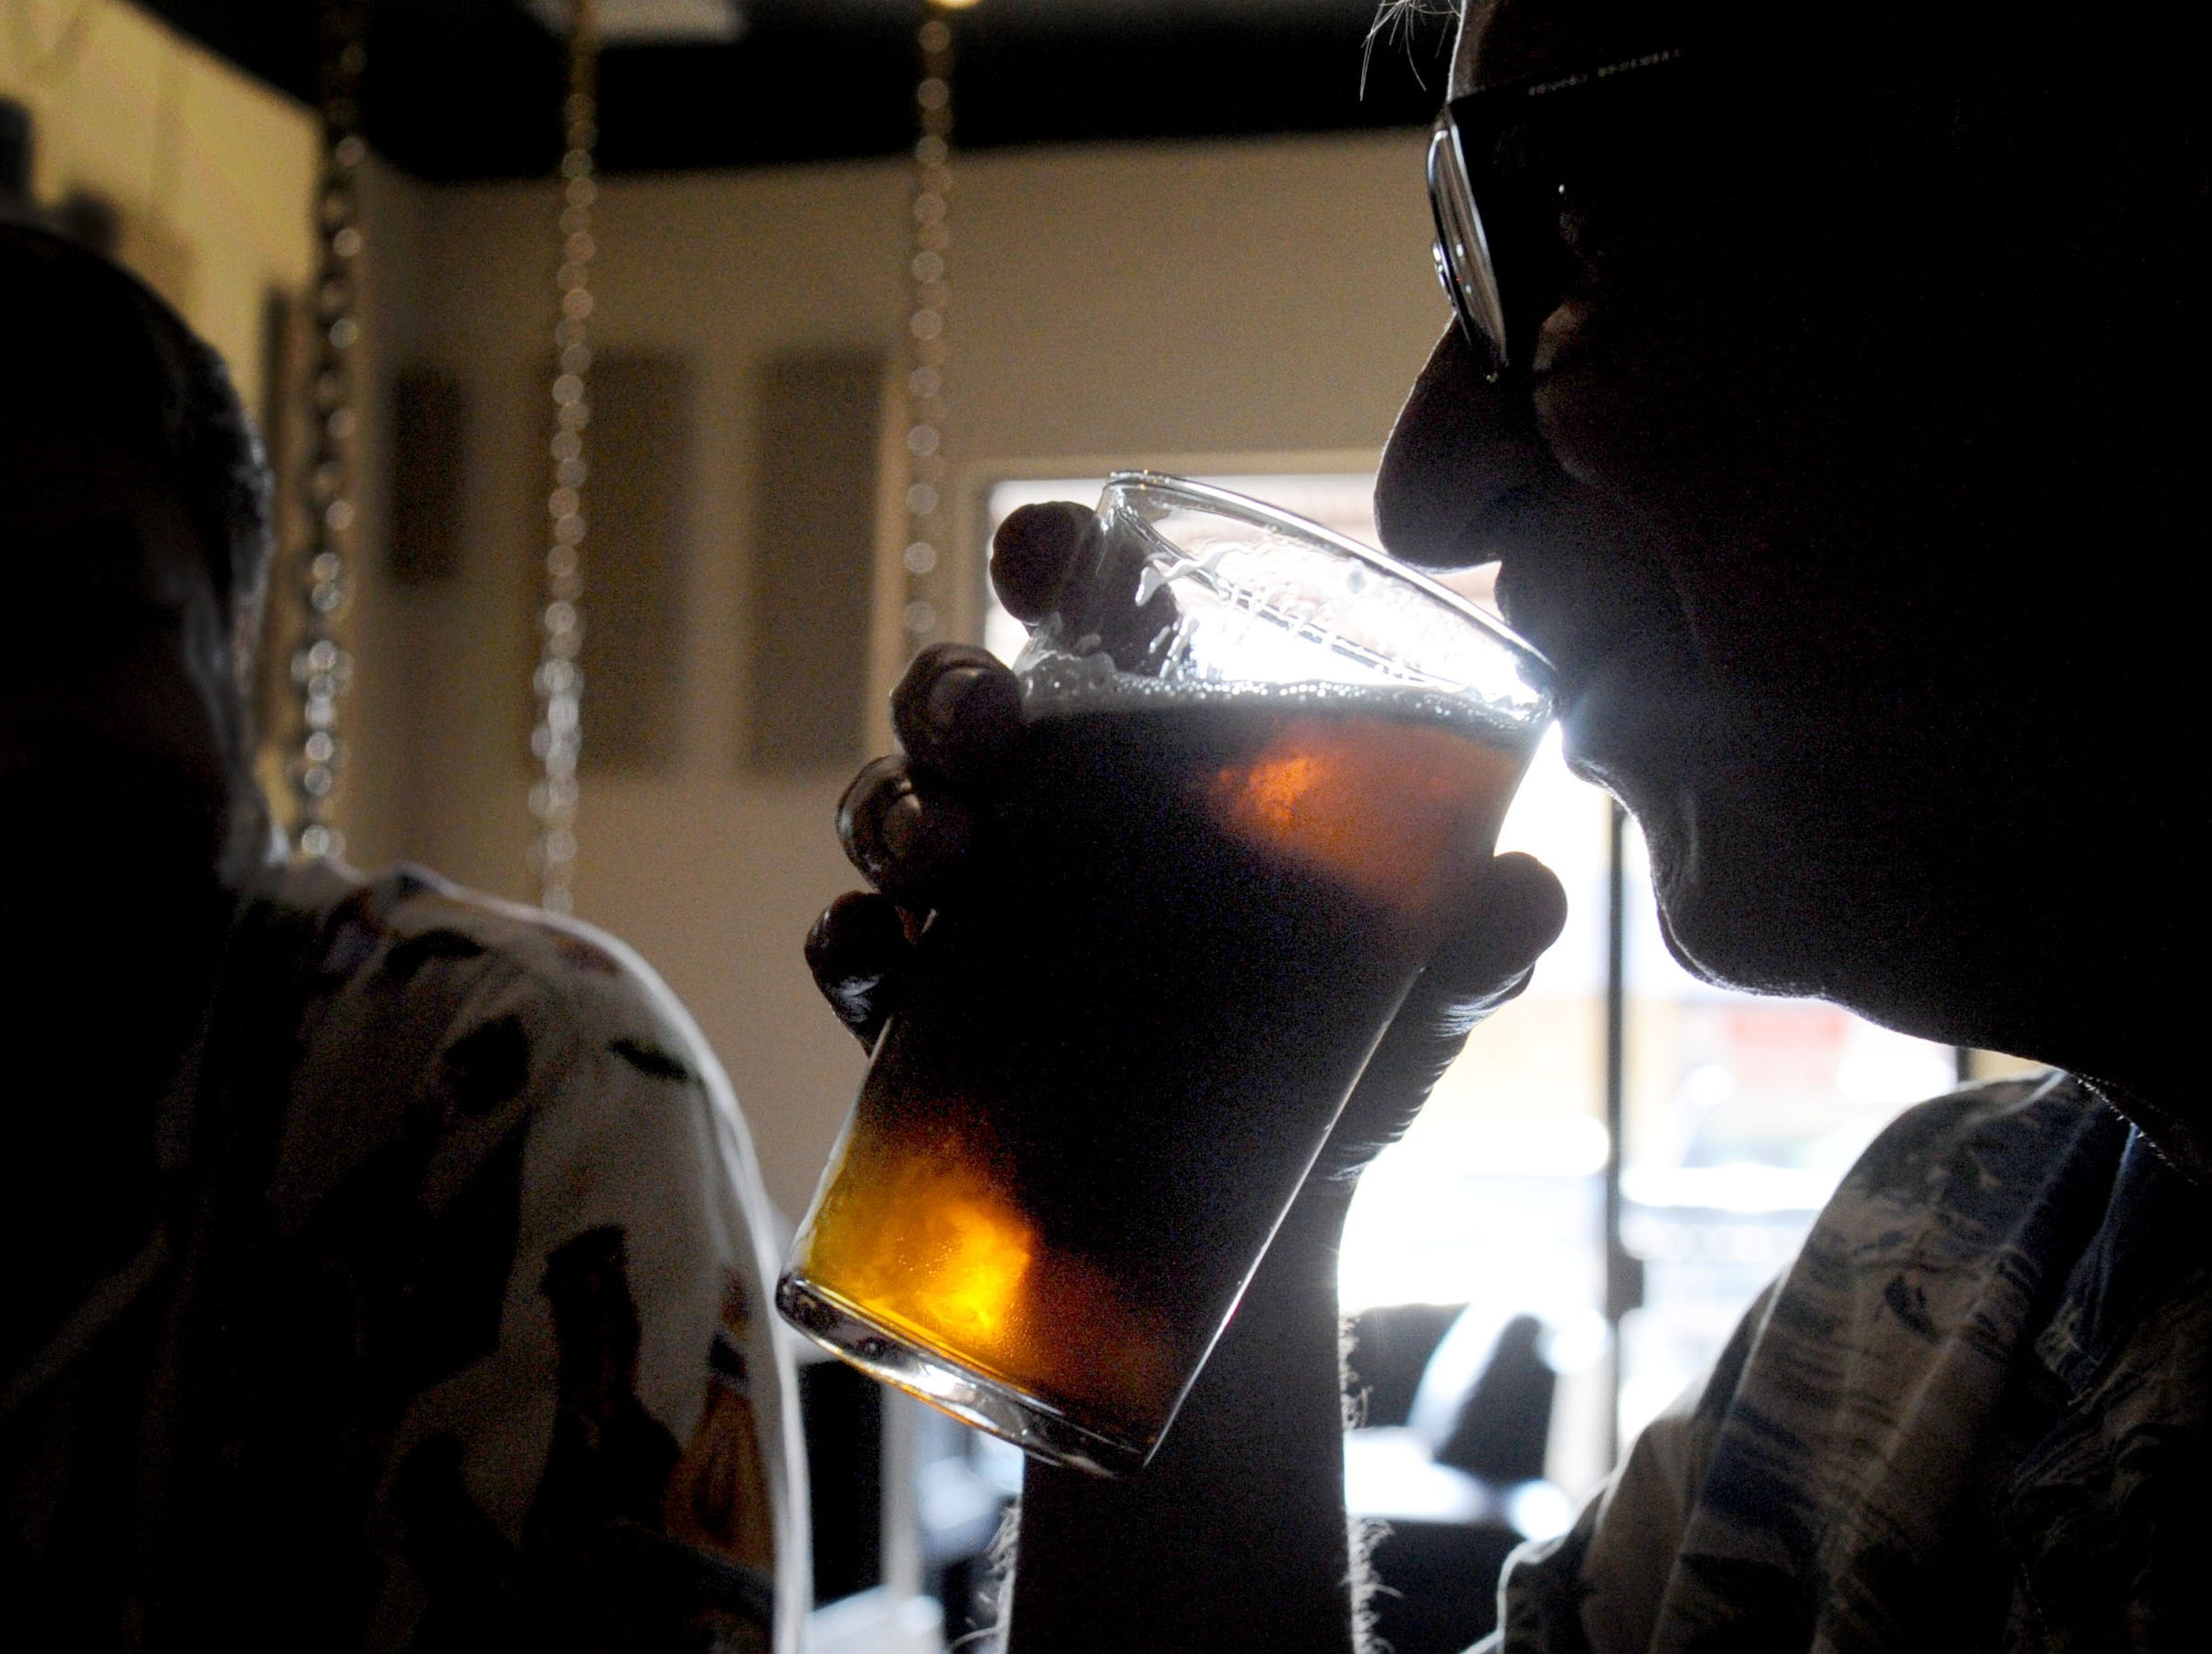 Lynn Robison drinks a beer at Five Threads Brewing Company in Westlake Village.